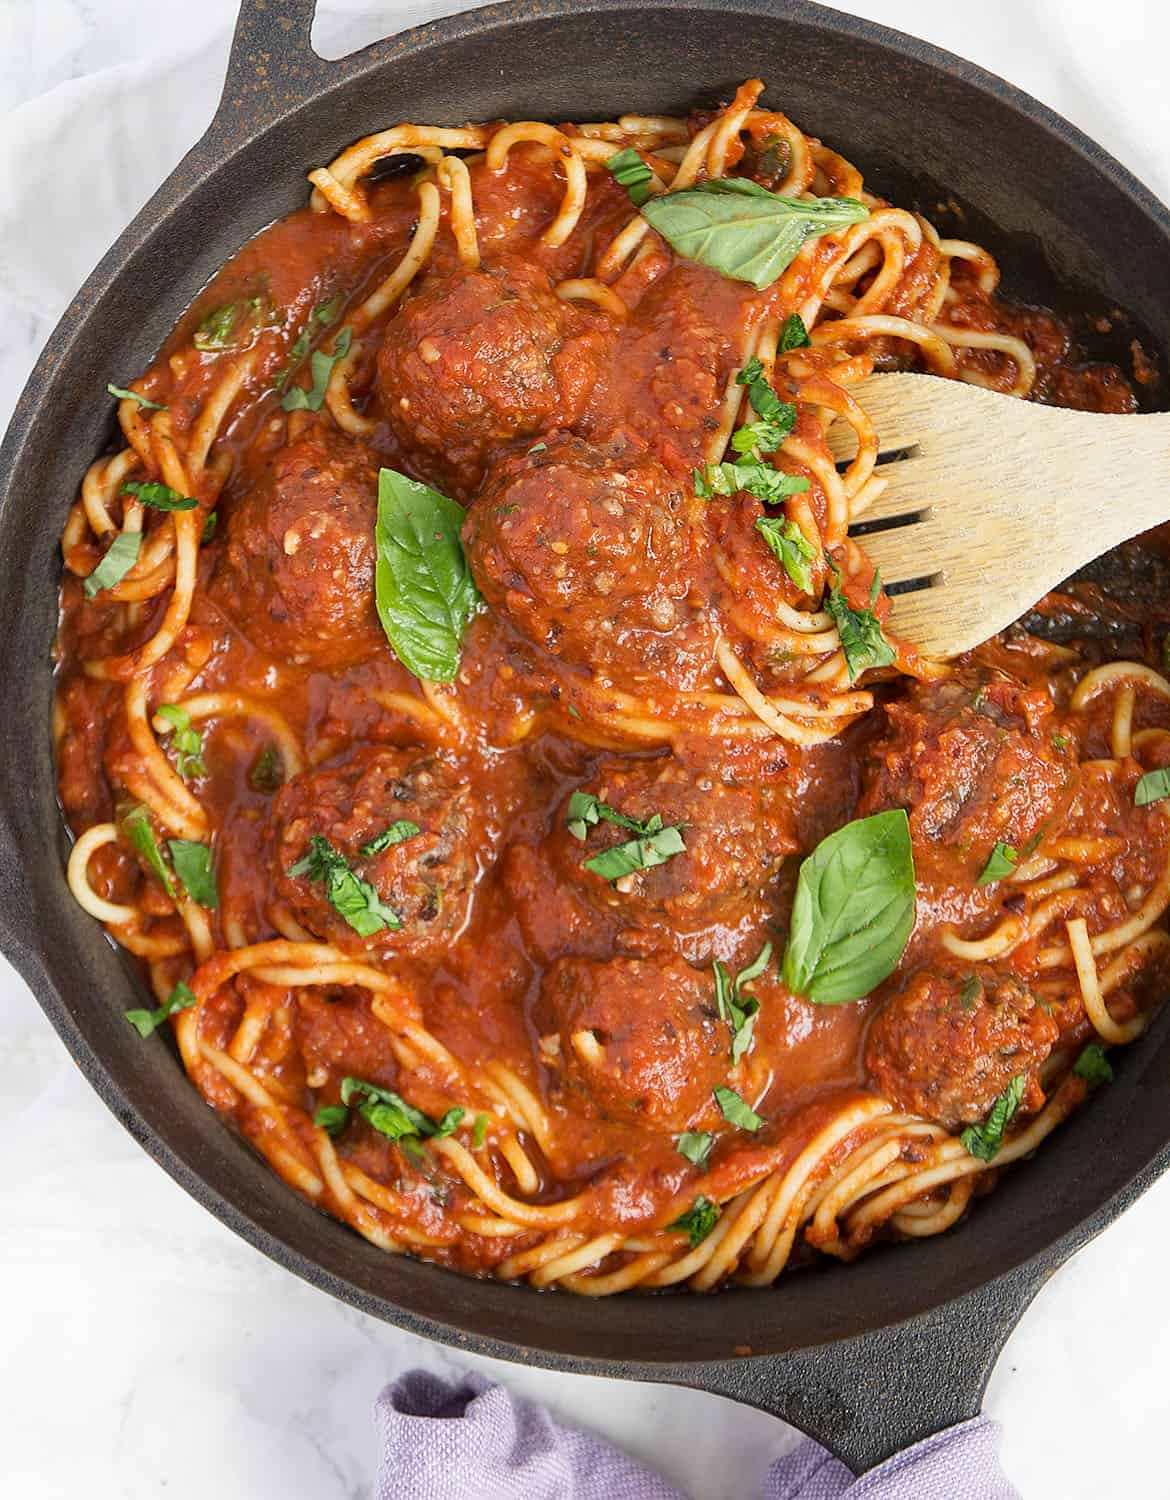 Succulent and tender meatless meatballs in a cast iron skillet.